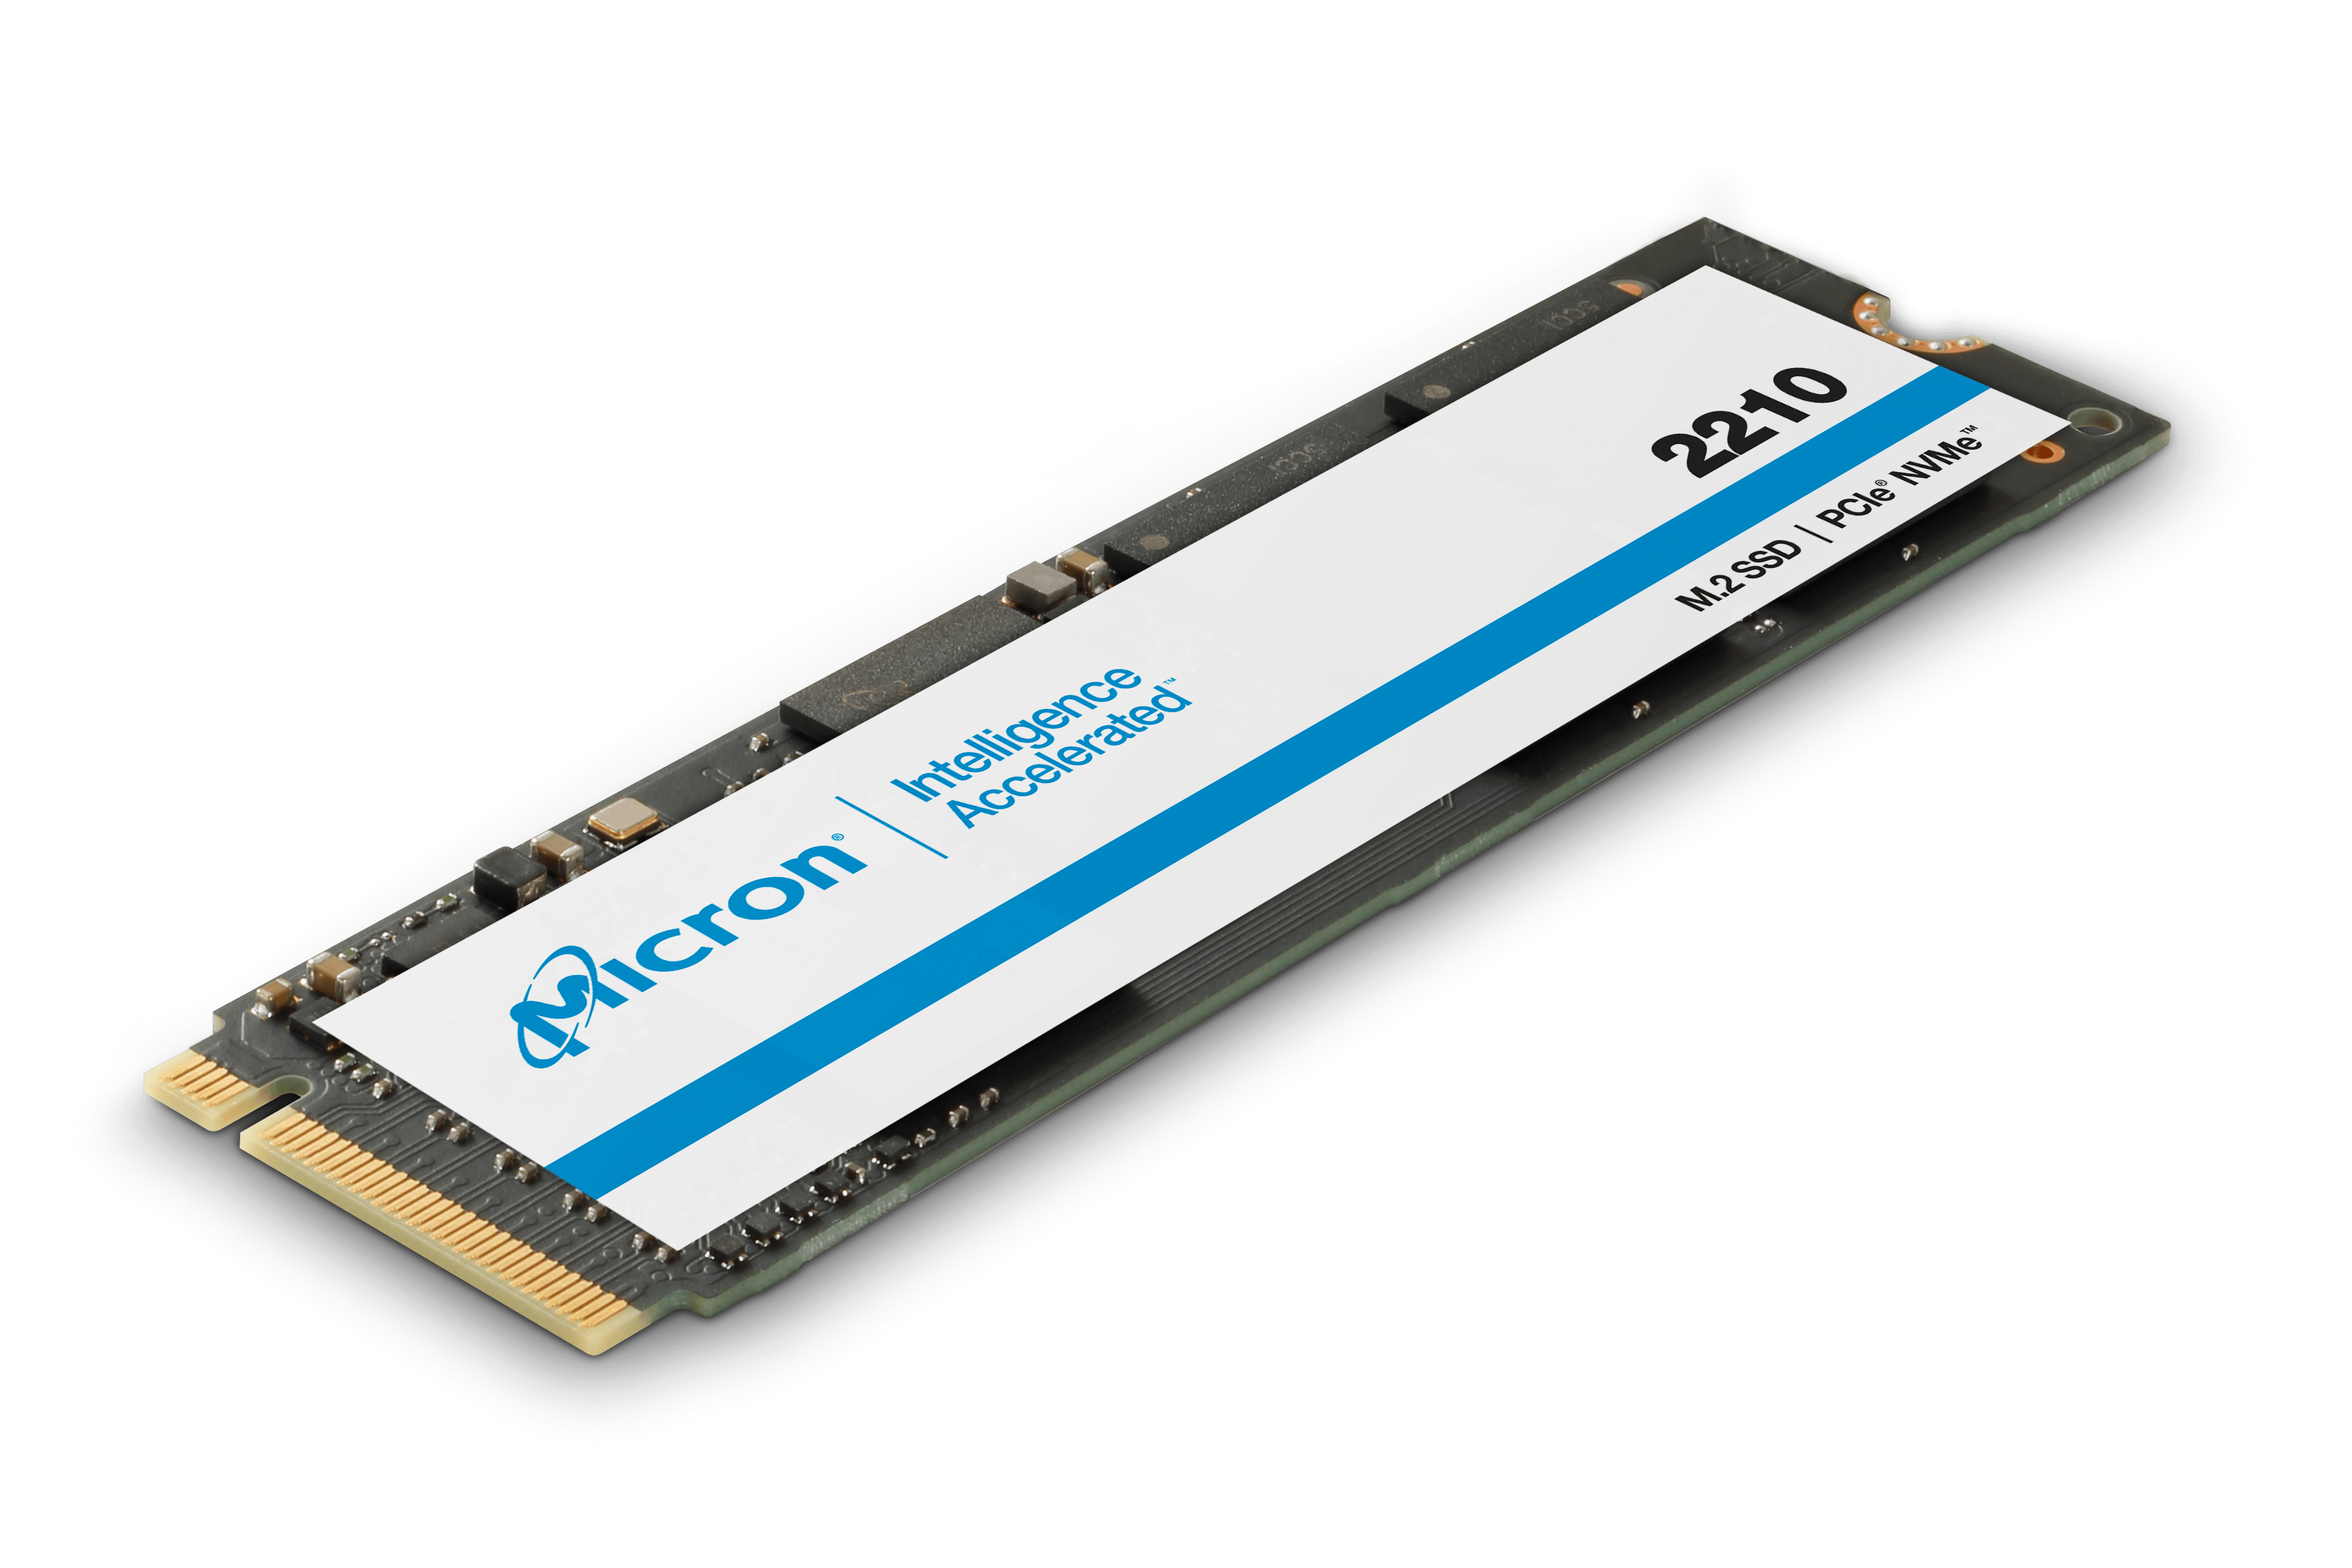 Isometric image of the Micron 2210 SSD with NVMe